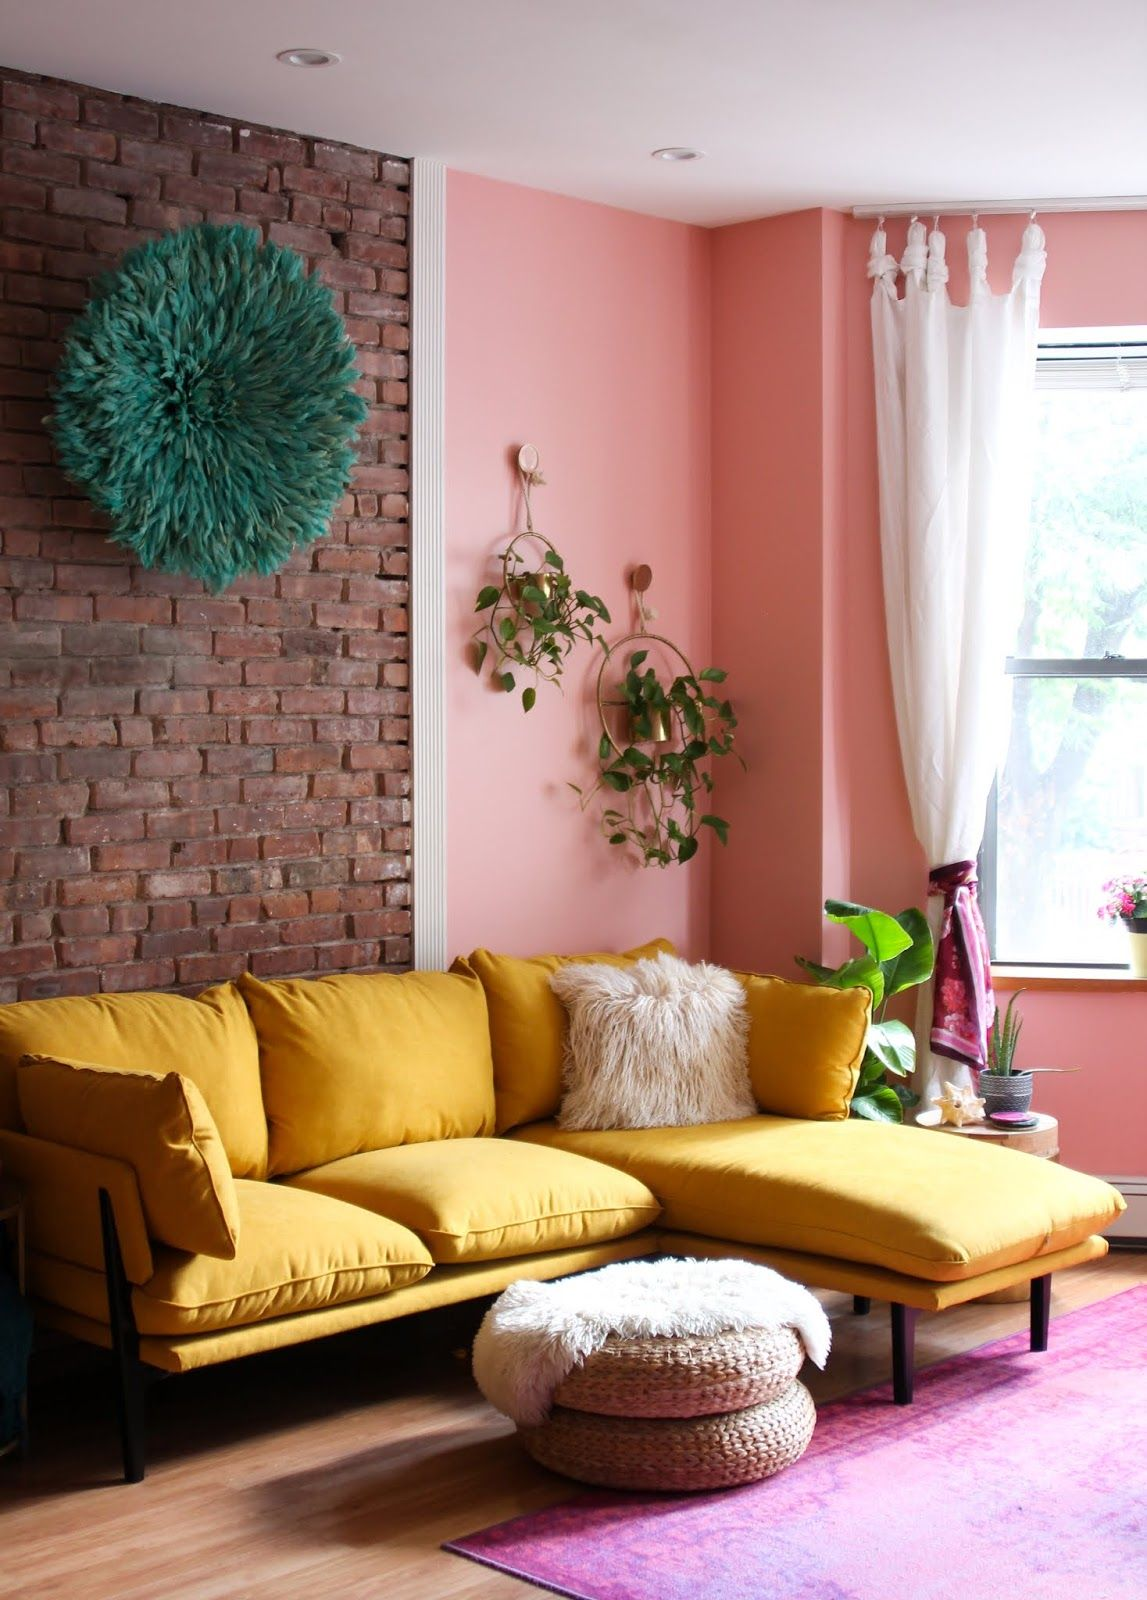 Ready To Go Bold In Your Living Room Here S The Bright Yellow Sofa Of Your Dreams In 2020 Yellow Sofa Vibrant Living Room Yellow Couch #yellow #sofa #living #room #ideas